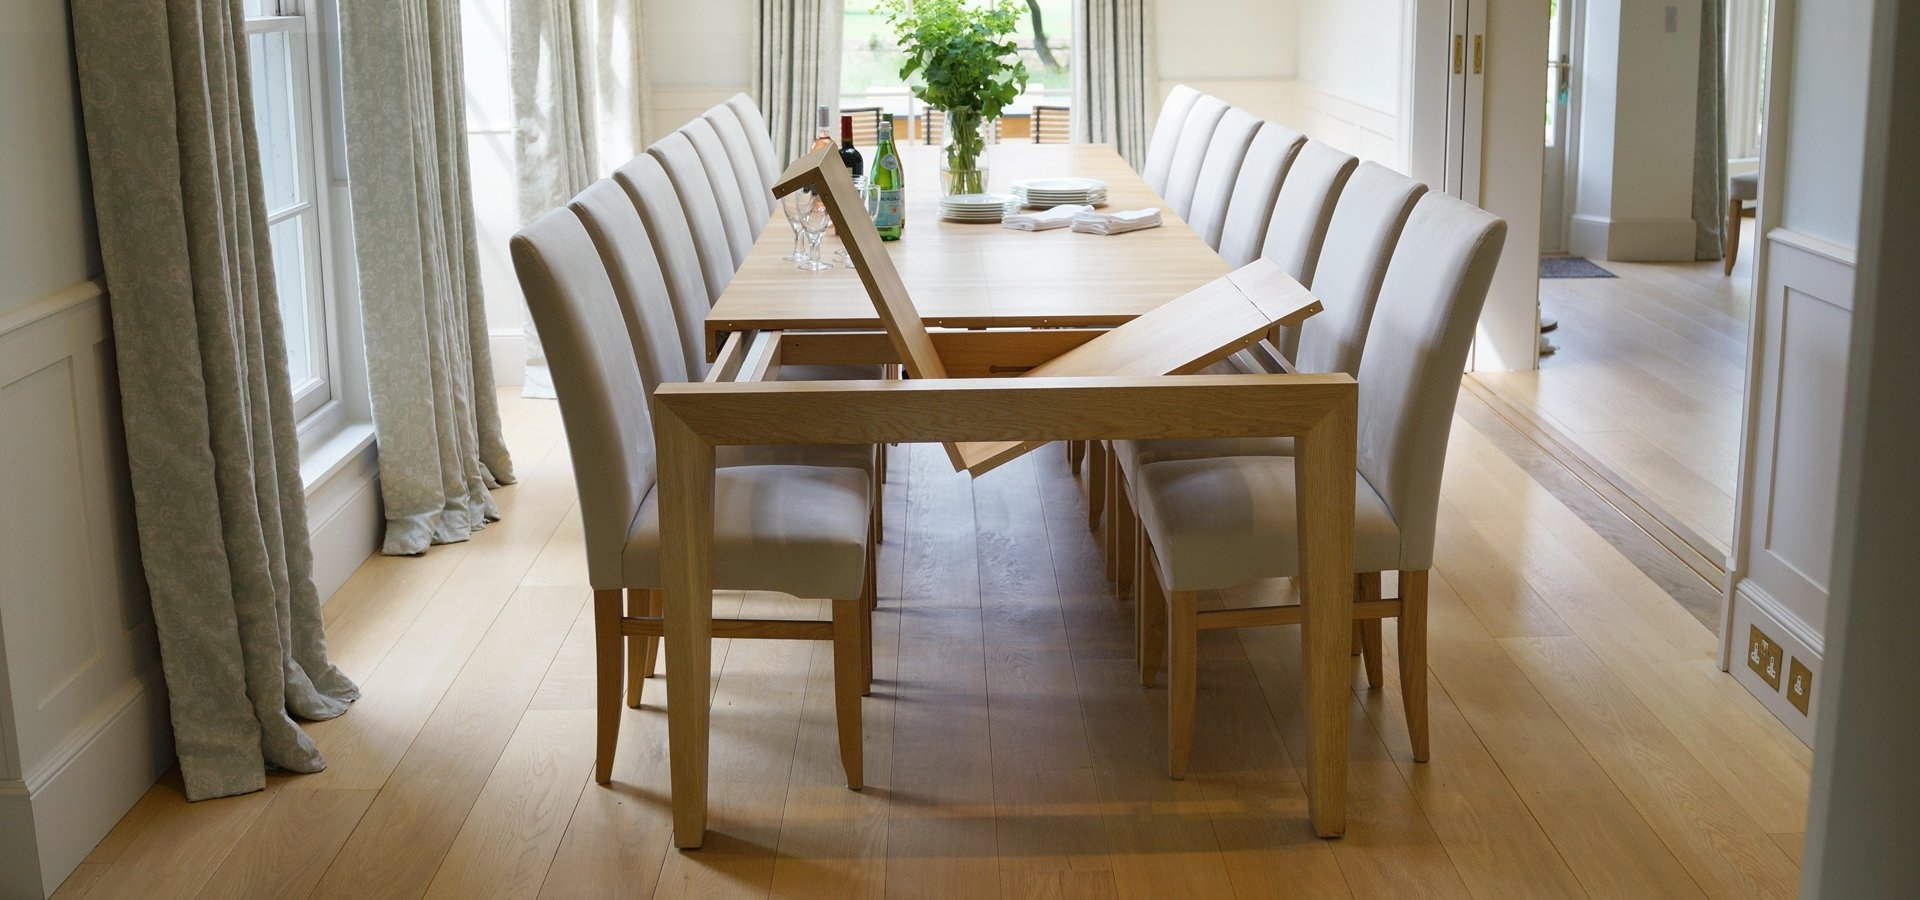 Extendable Oak Dining Tables And Chairs Regarding Current Contemporary Dining Tables & Furnitureberrydesign (View 11 of 25)